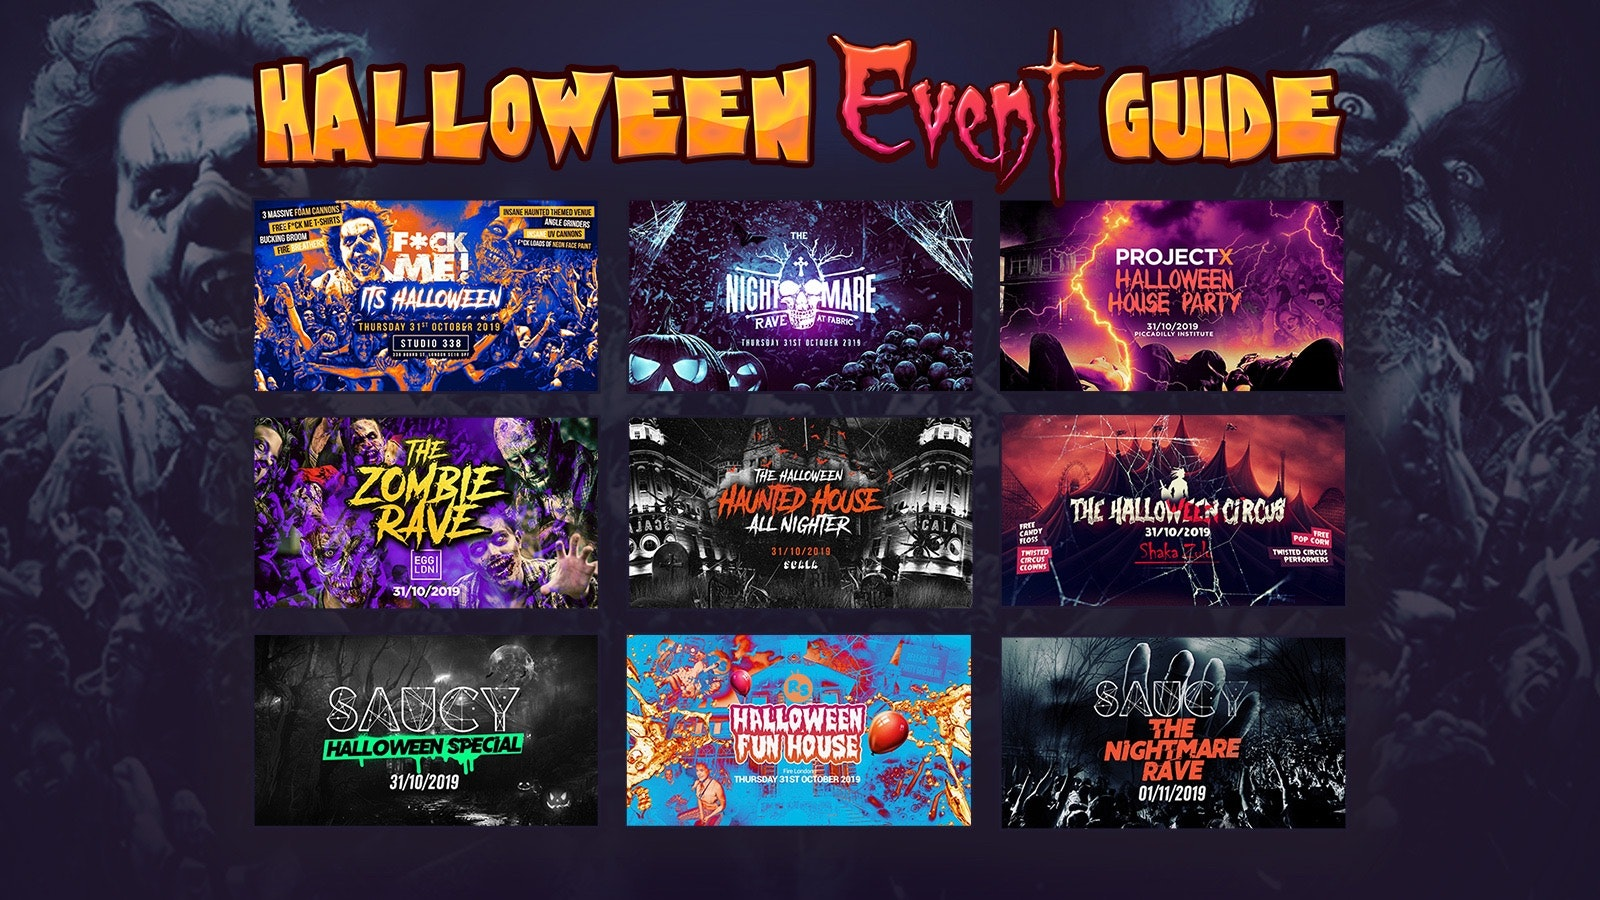 The 2019 Complete London Halloween Guide – The Biggest London Halloween Event Guide Of 2019